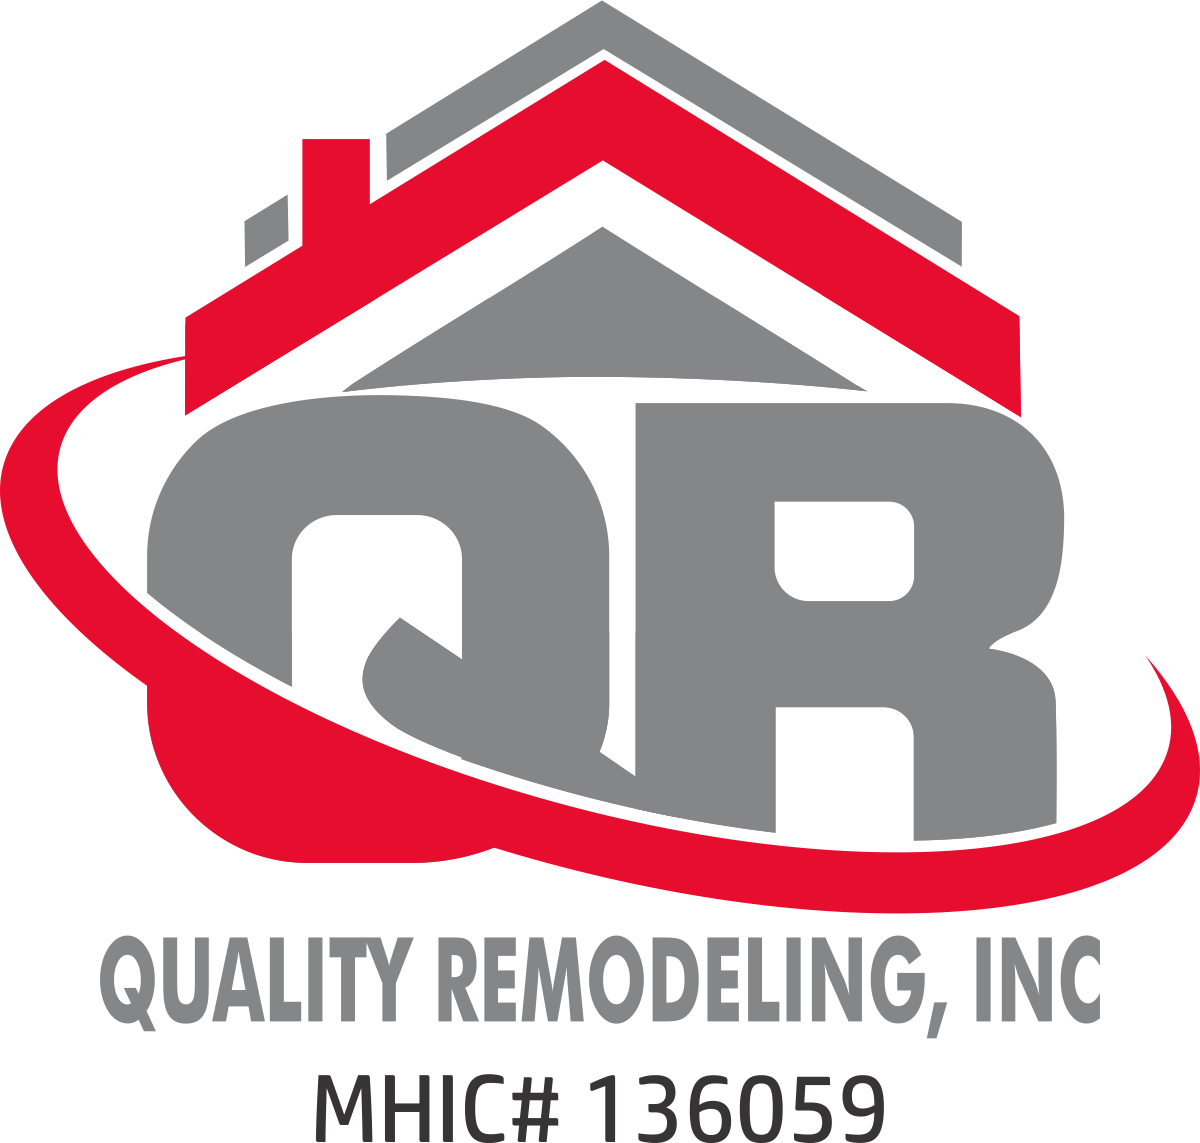 Quality Remodeling, Inc.